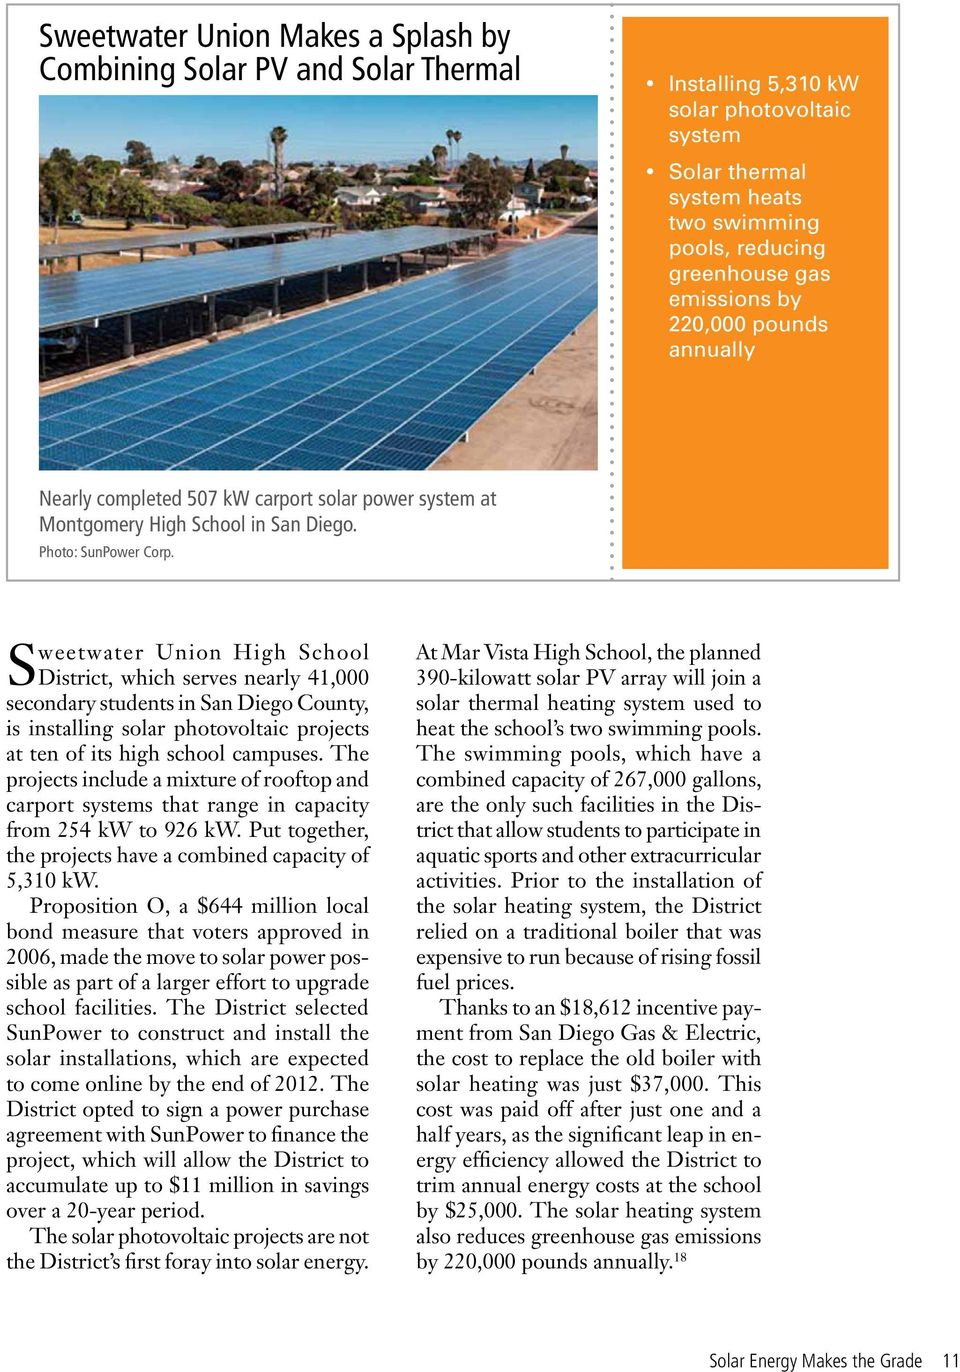 Sweetwater Union High School District, which serves nearly 41,000 secondary students in San Diego County, is installing solar photovoltaic projects at ten of its high school campuses.